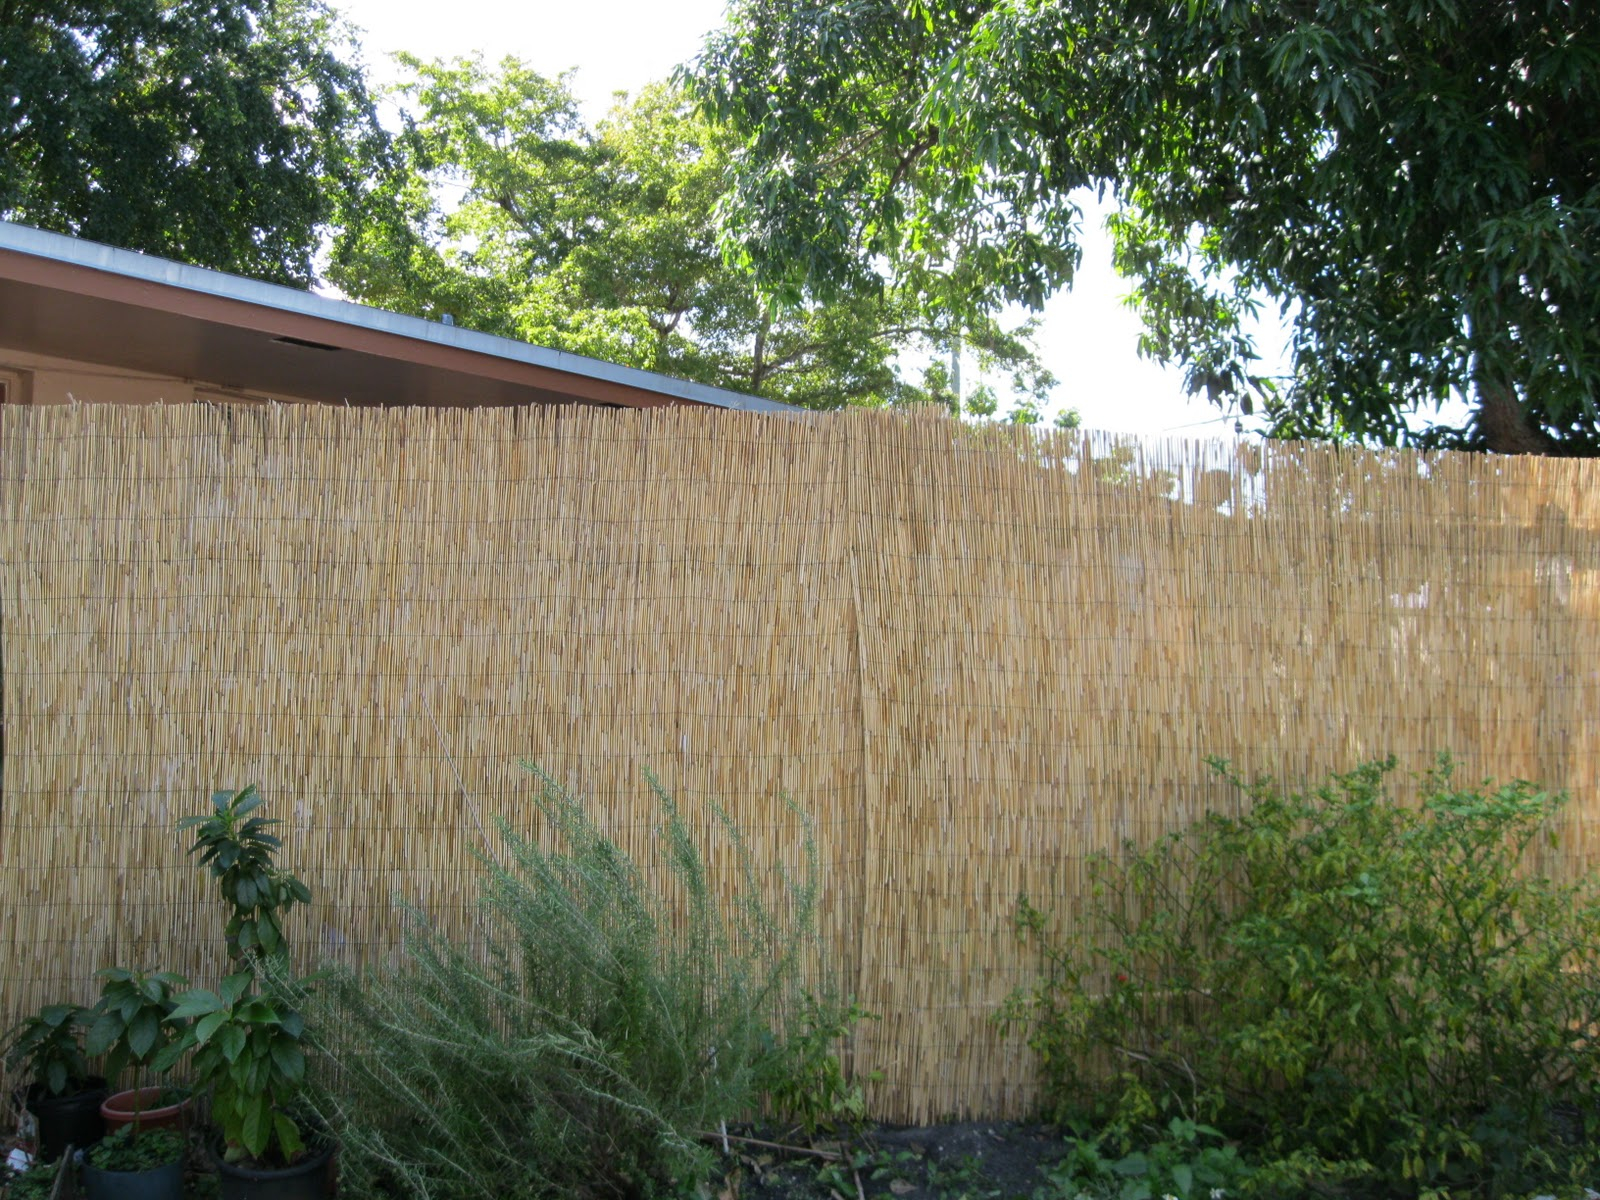 1 Landscaping Landscaping Ideas For Backyard X Scapes with regard to Backyard XScapes Rolled Bamboo Fencing